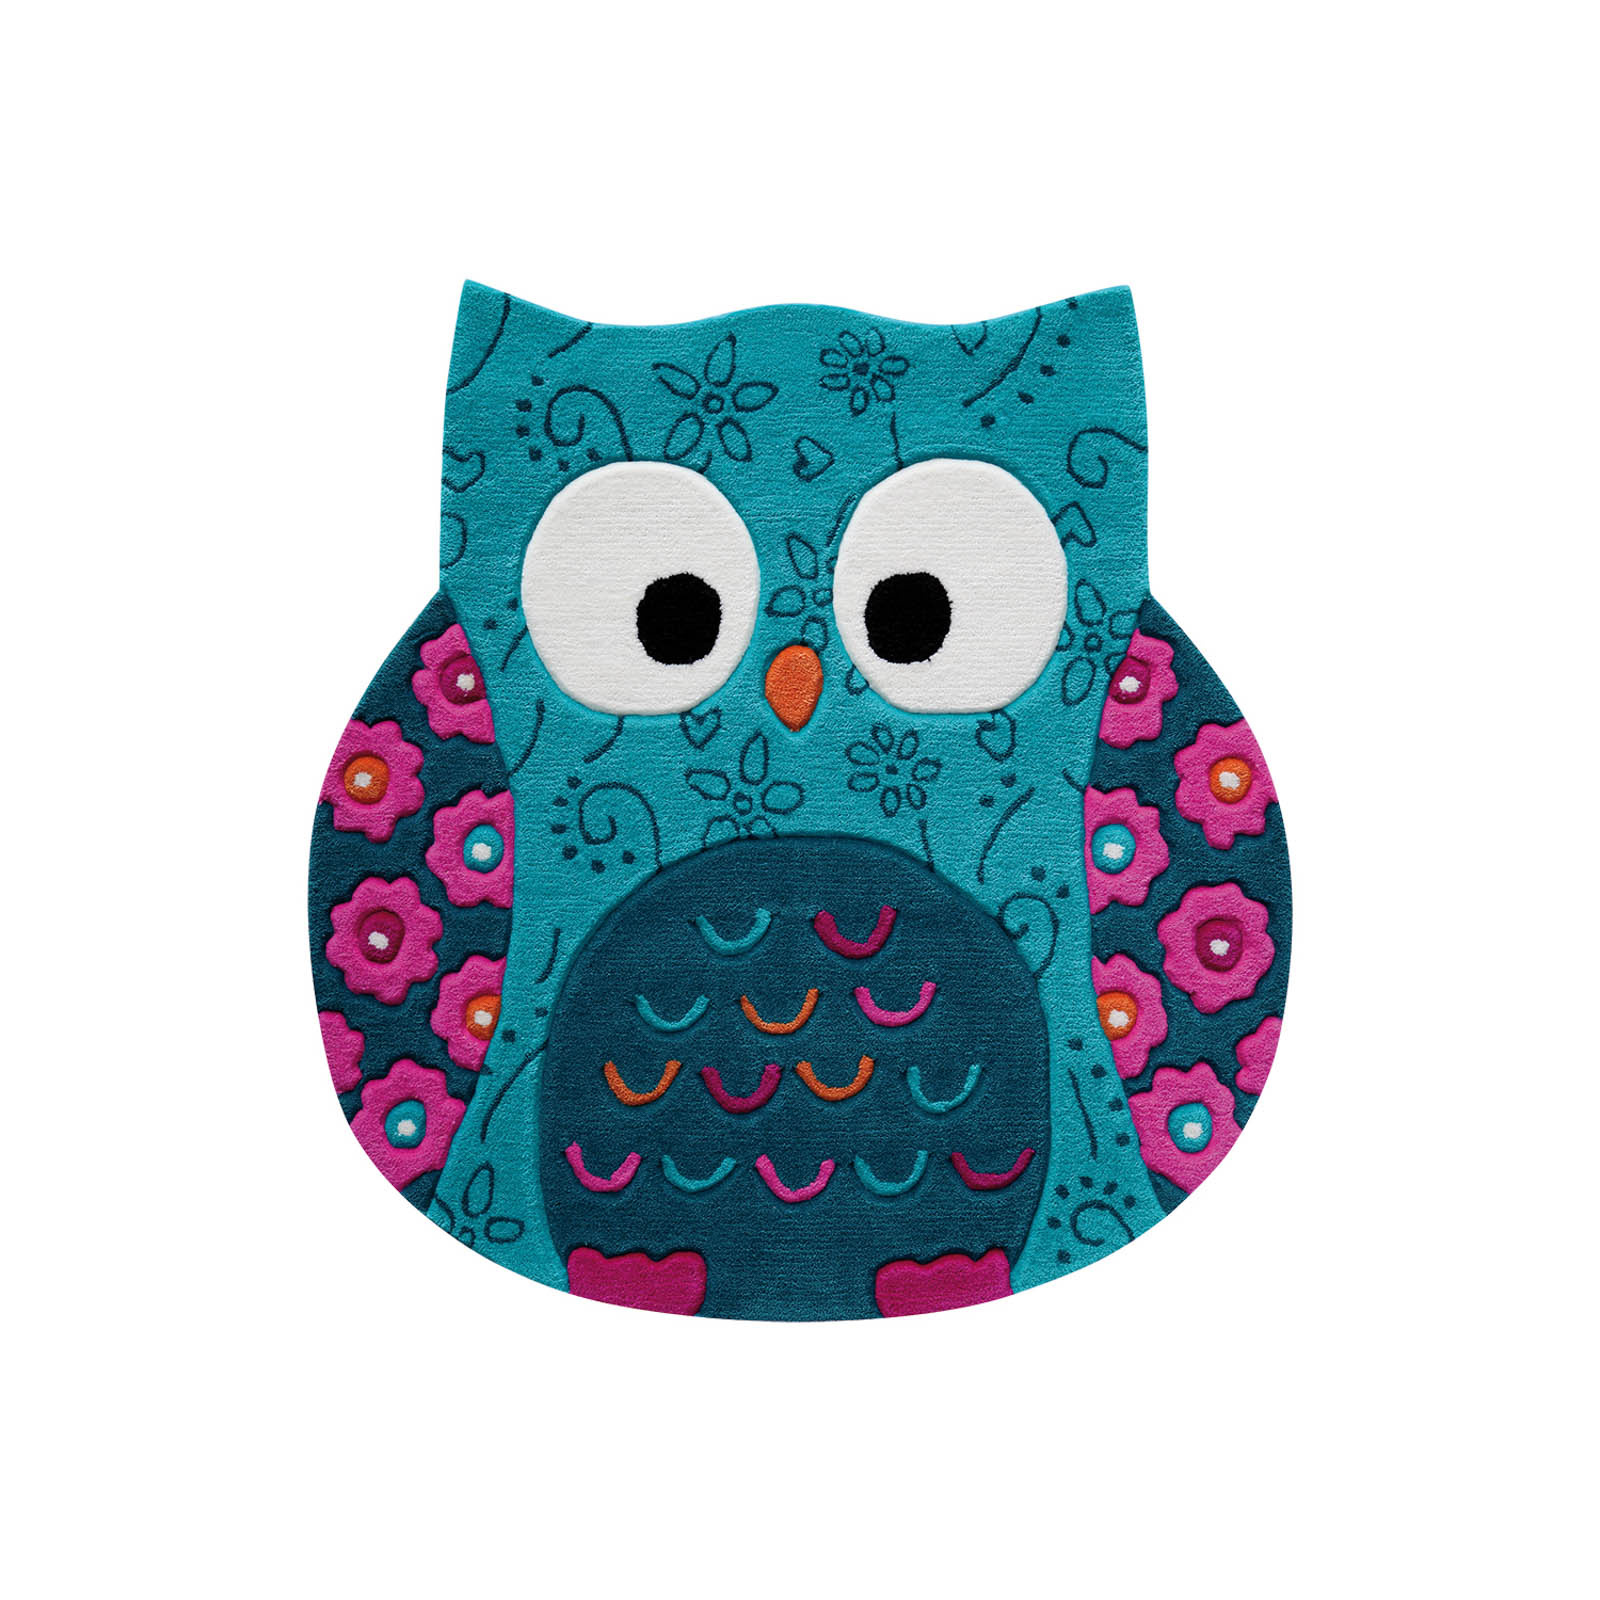 Little Owl Rugs 3659 01 in Turquoise